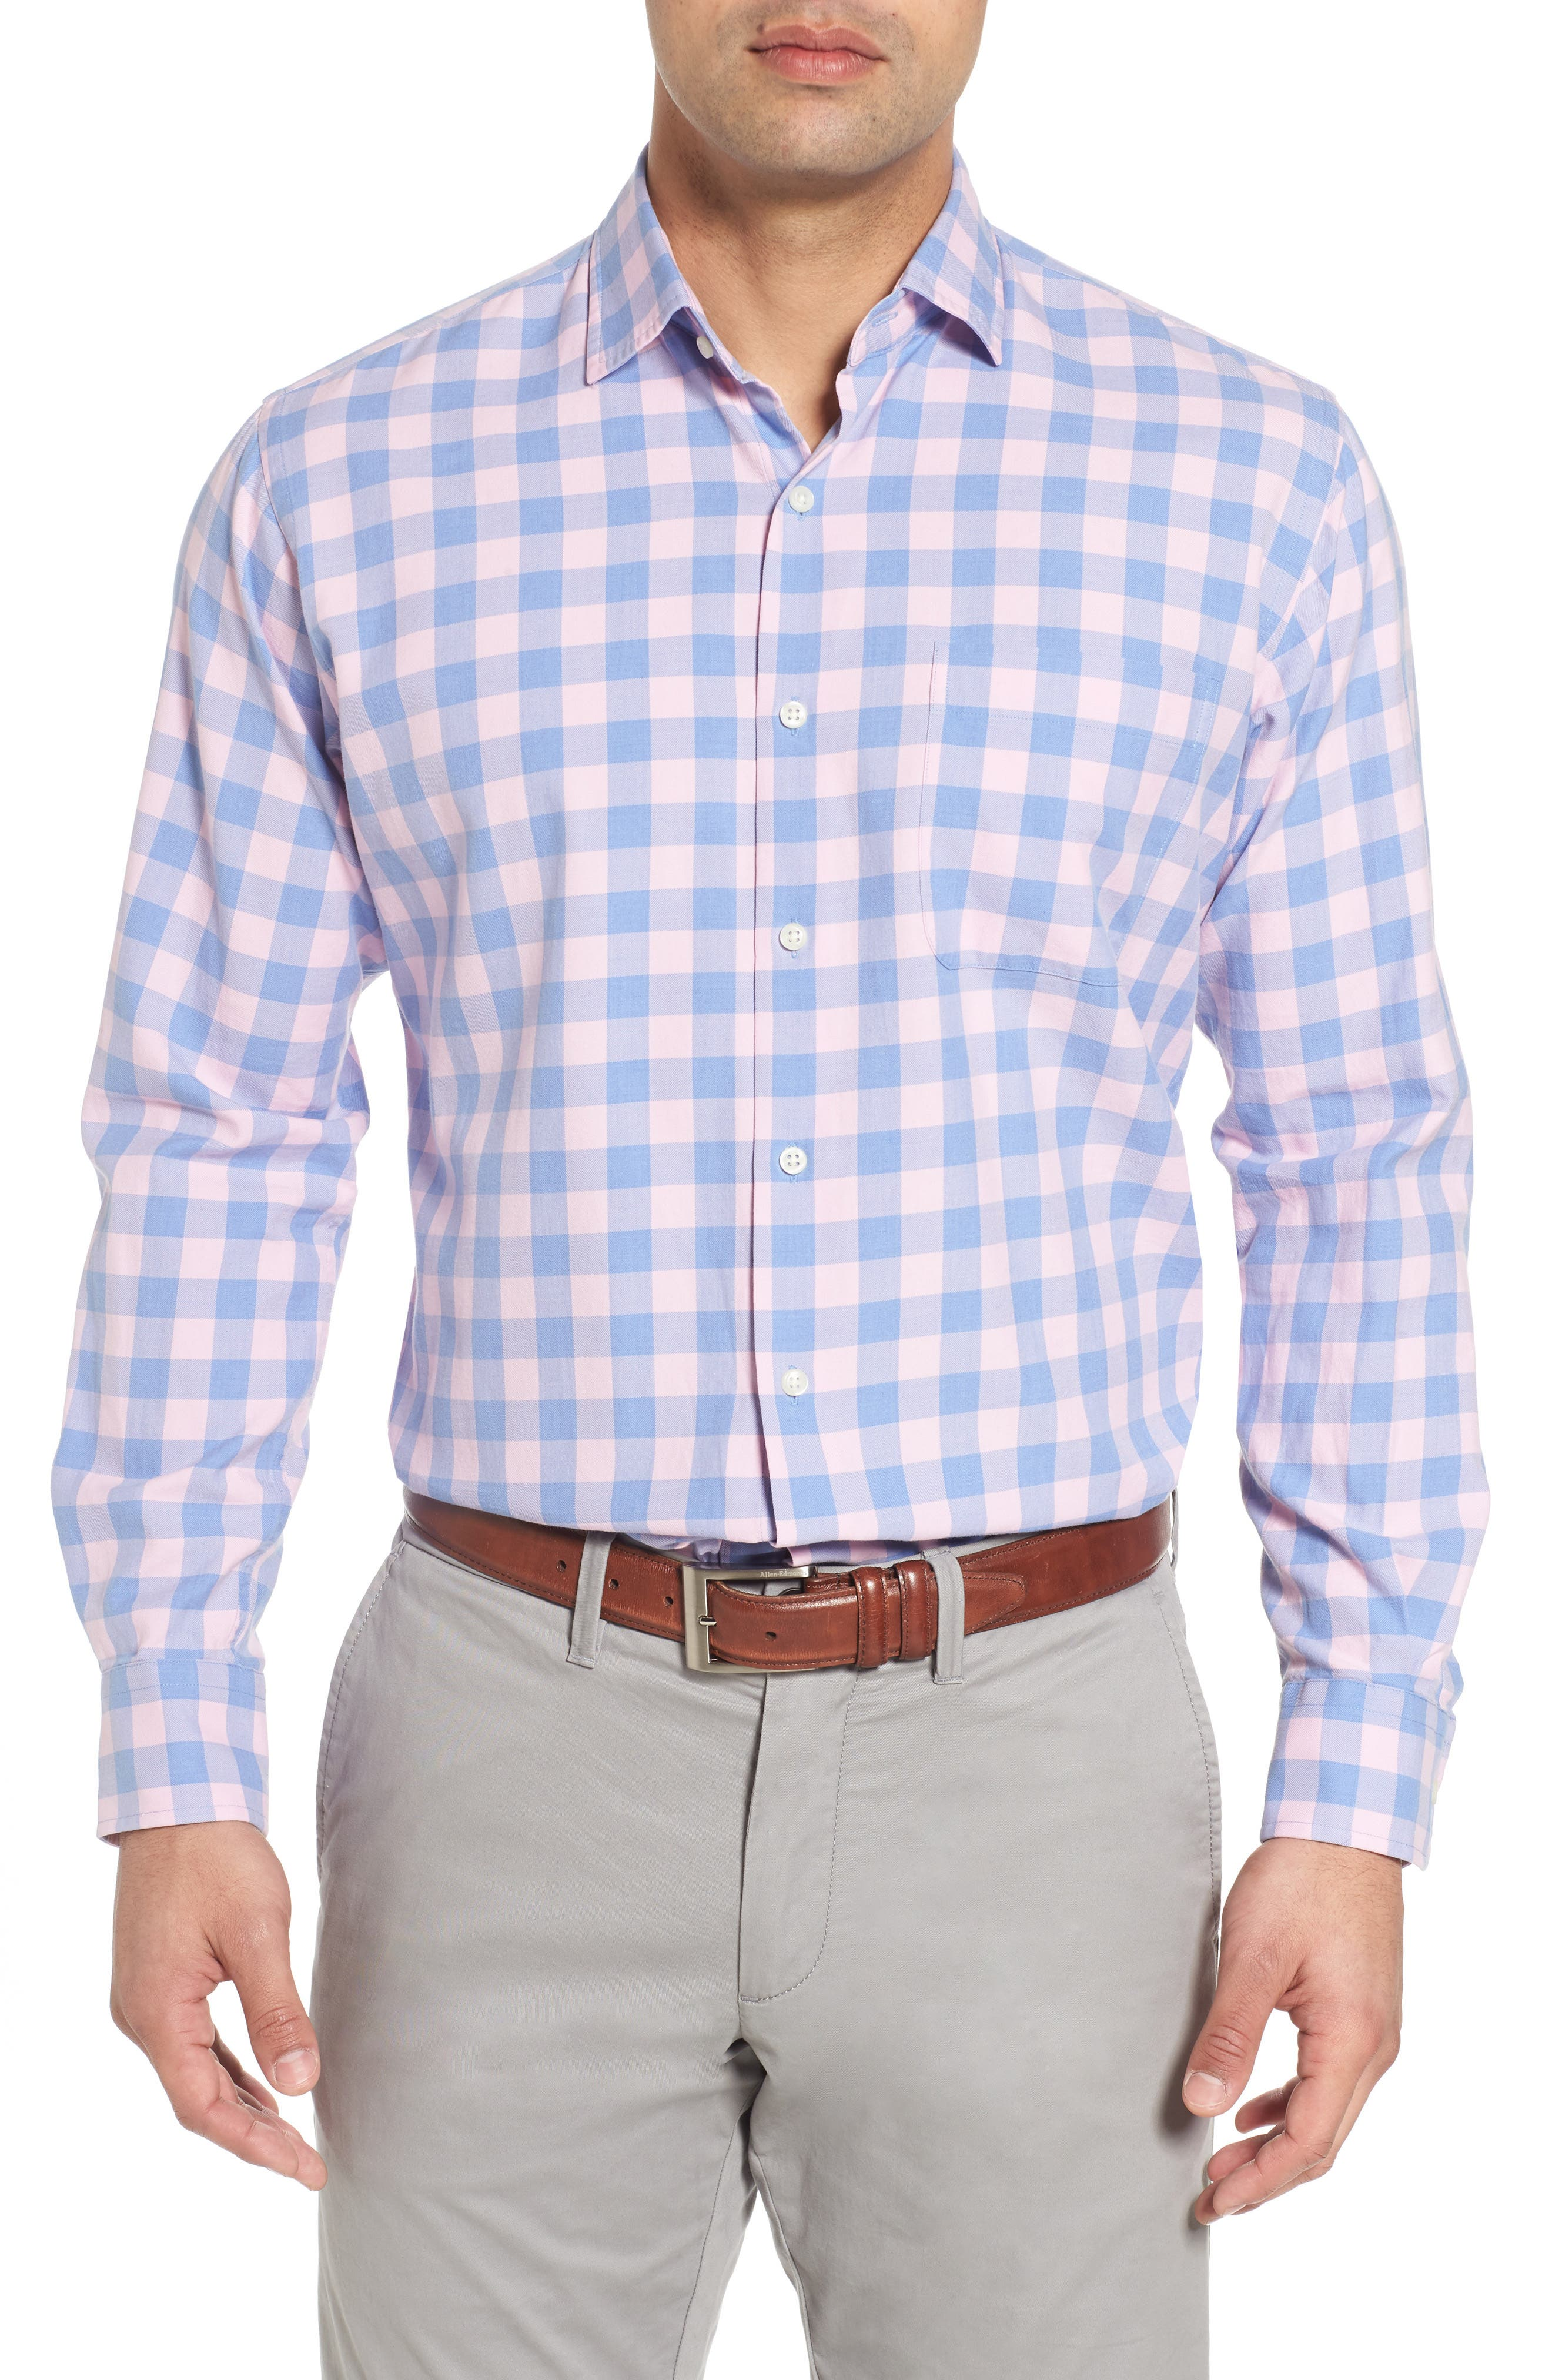 Seaglass Gingham Check Sport Shirt,                             Main thumbnail 1, color,                             407